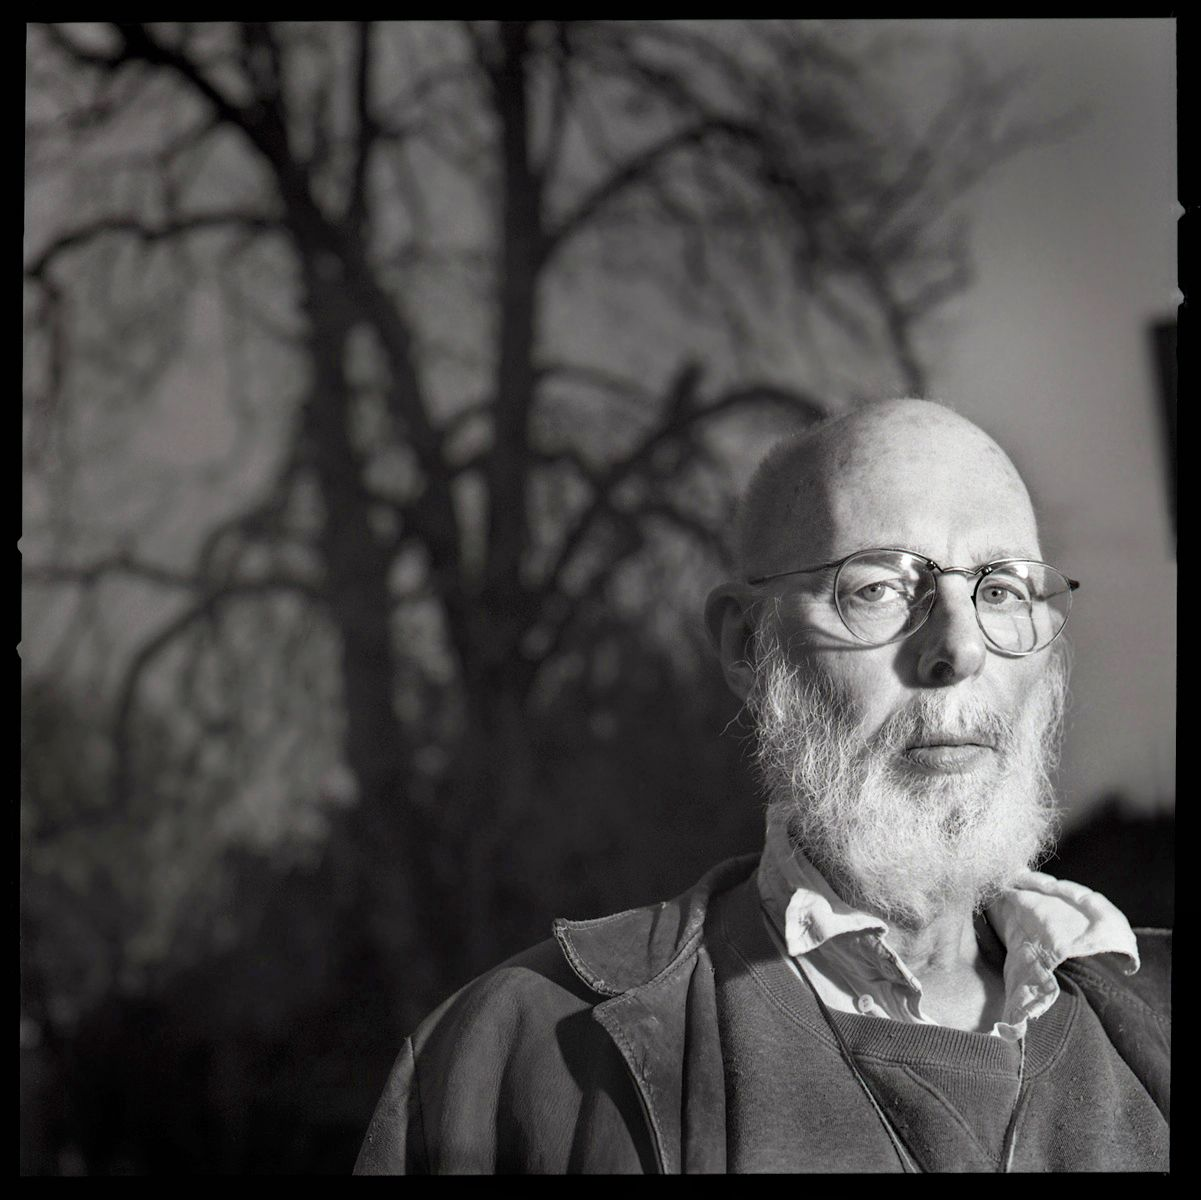 EDWARD GOREY, WRITER, ILLUSTRATOR